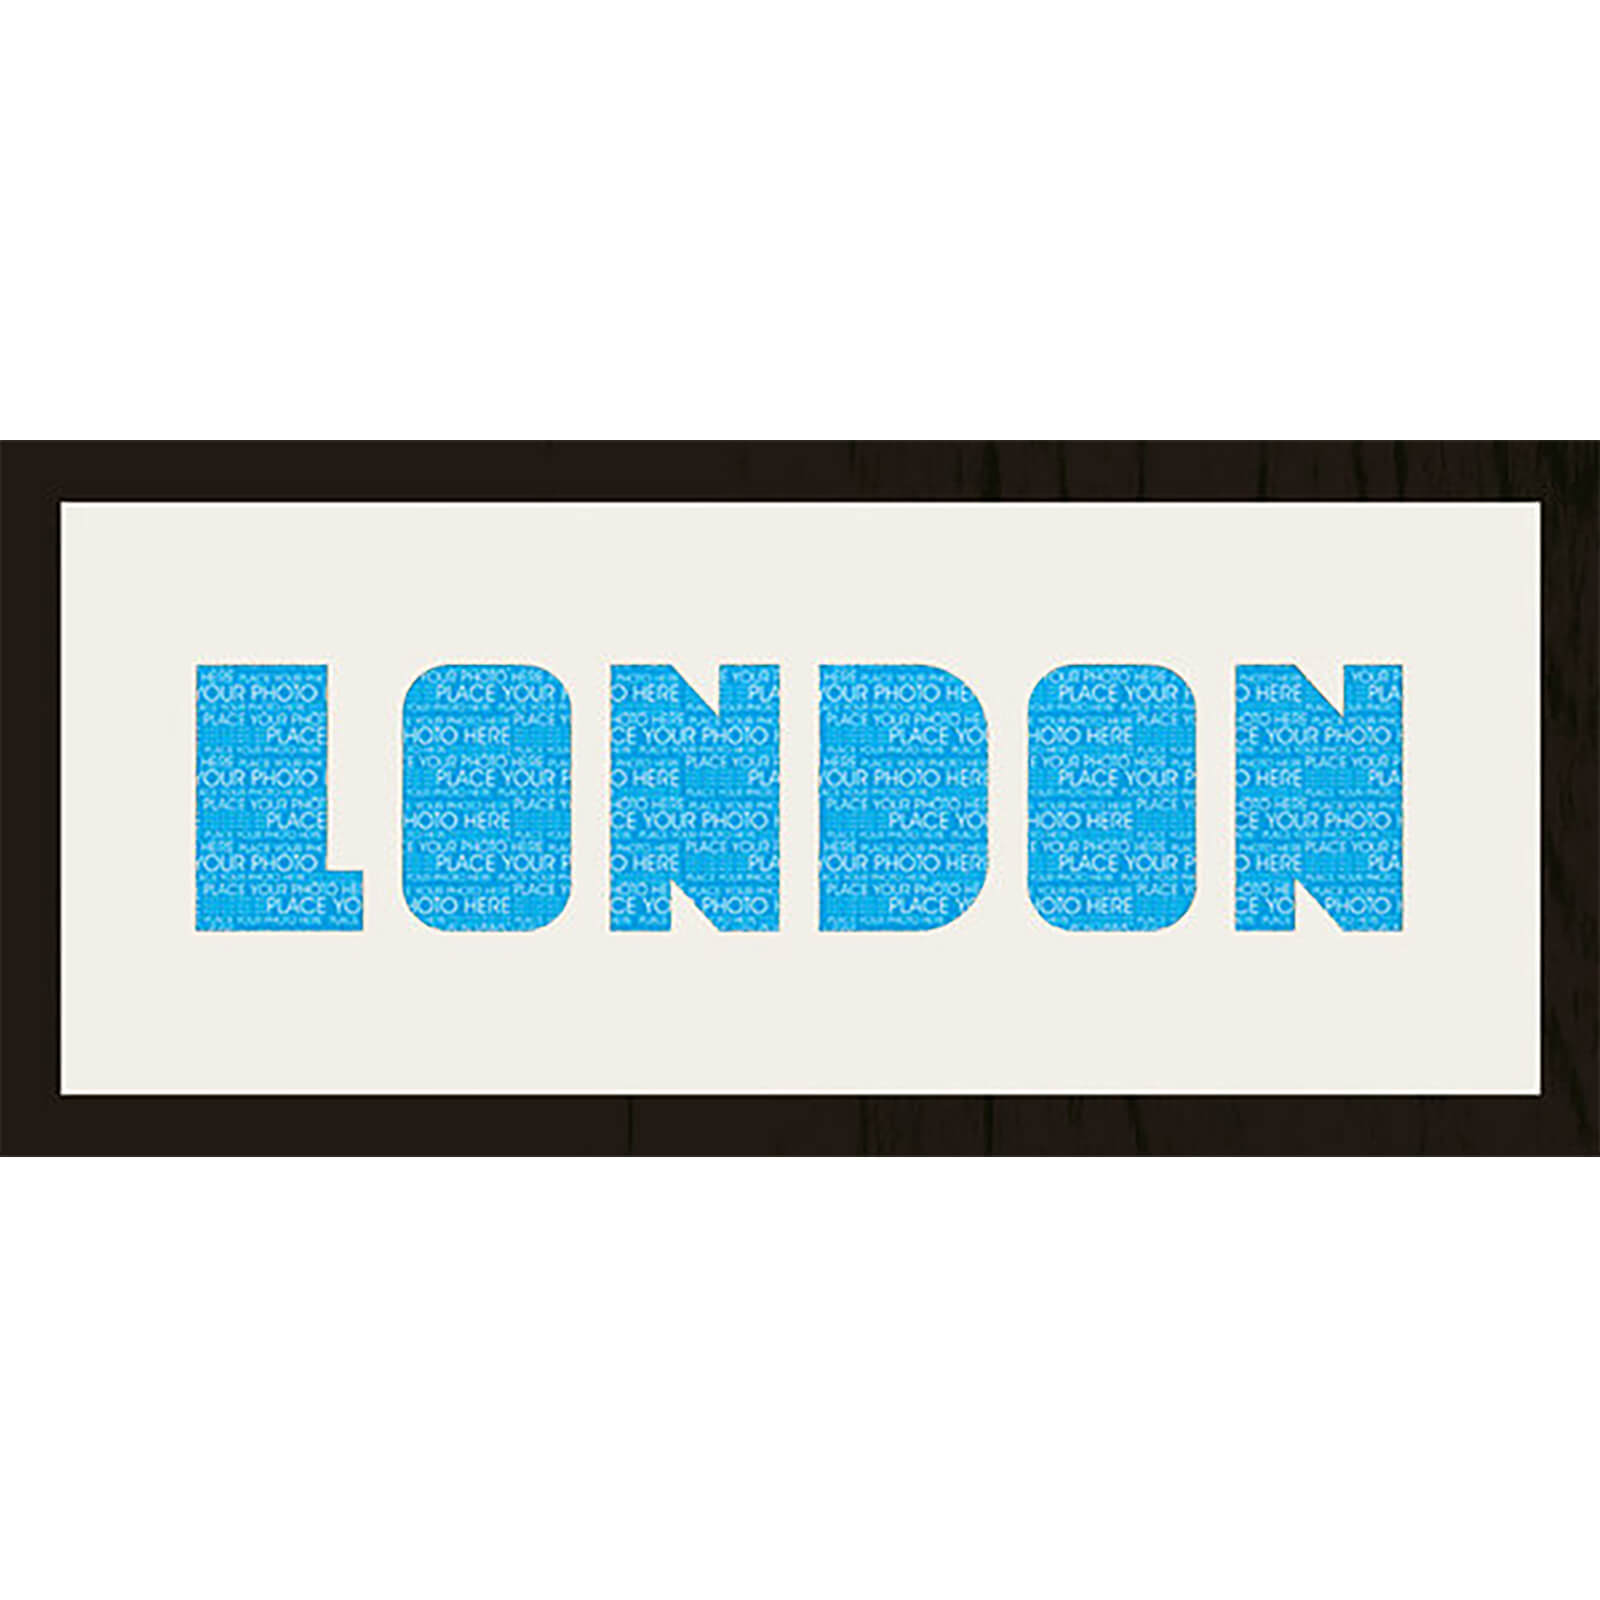 "GB Cream Mount London Photo Font - Framed Mount - 12"""" x 30"""